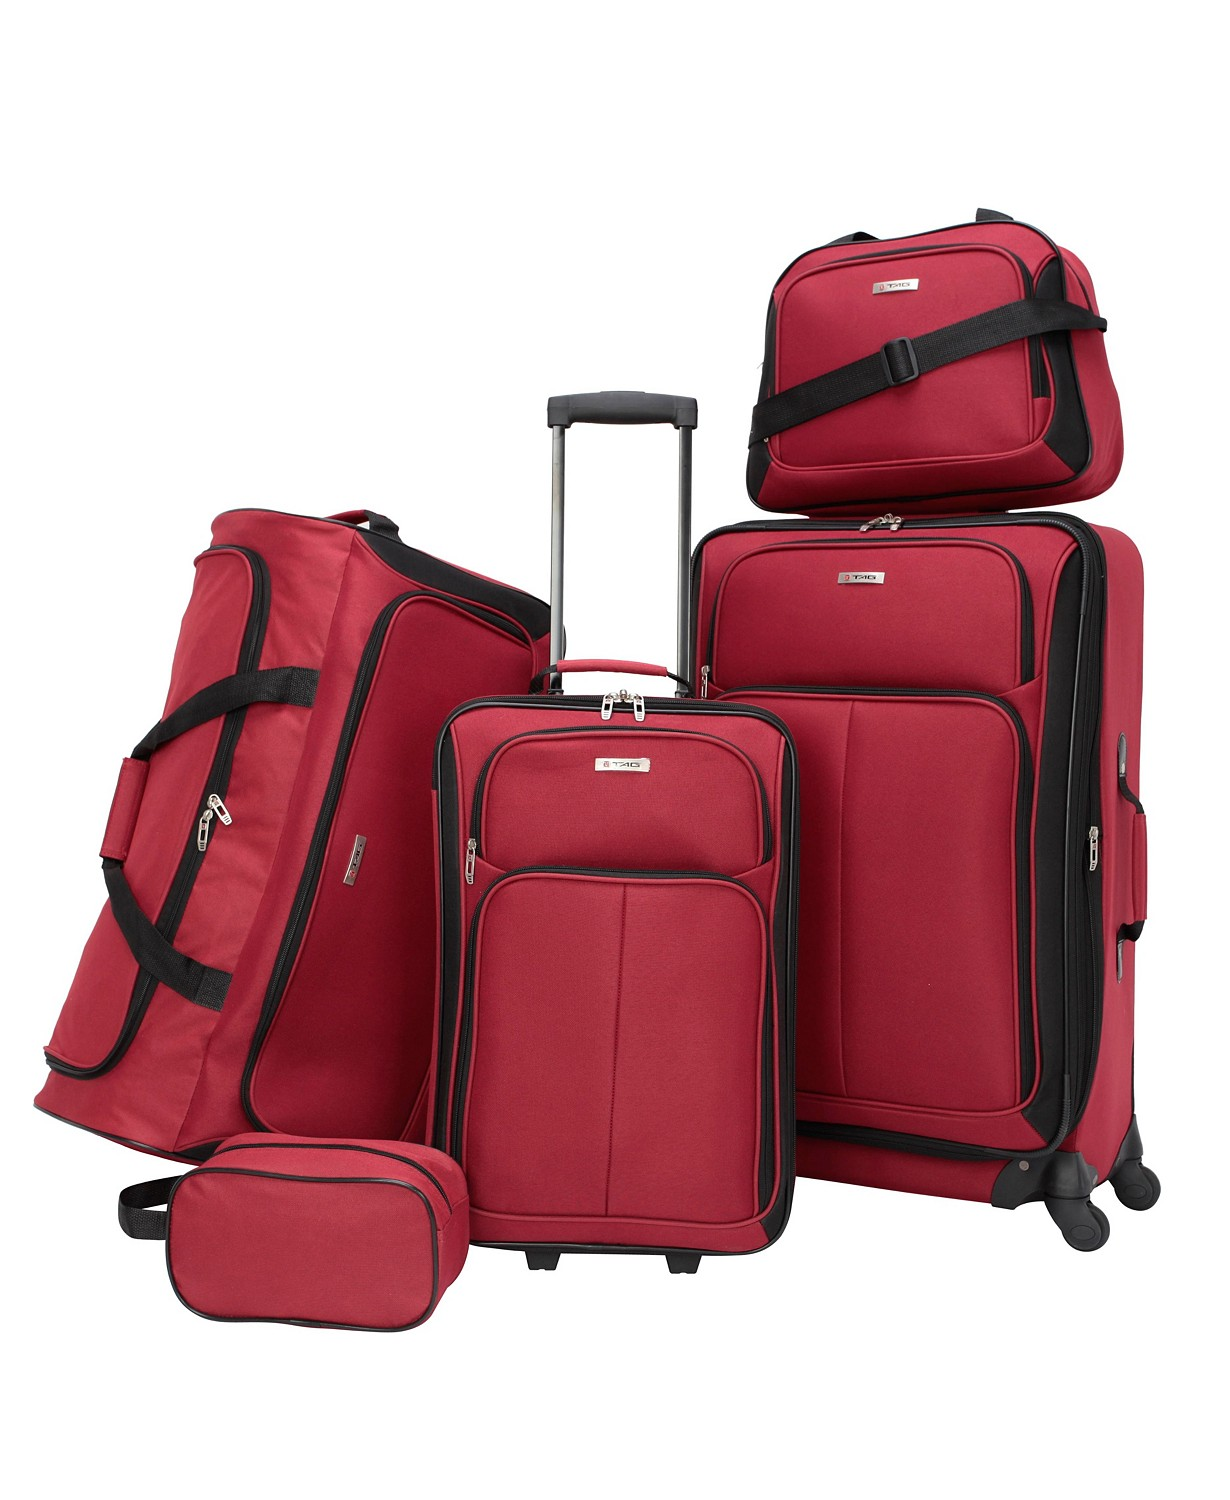 (79% OFF Deal) Ridgefield 5 Pc. Softside Luggage Set $49.99